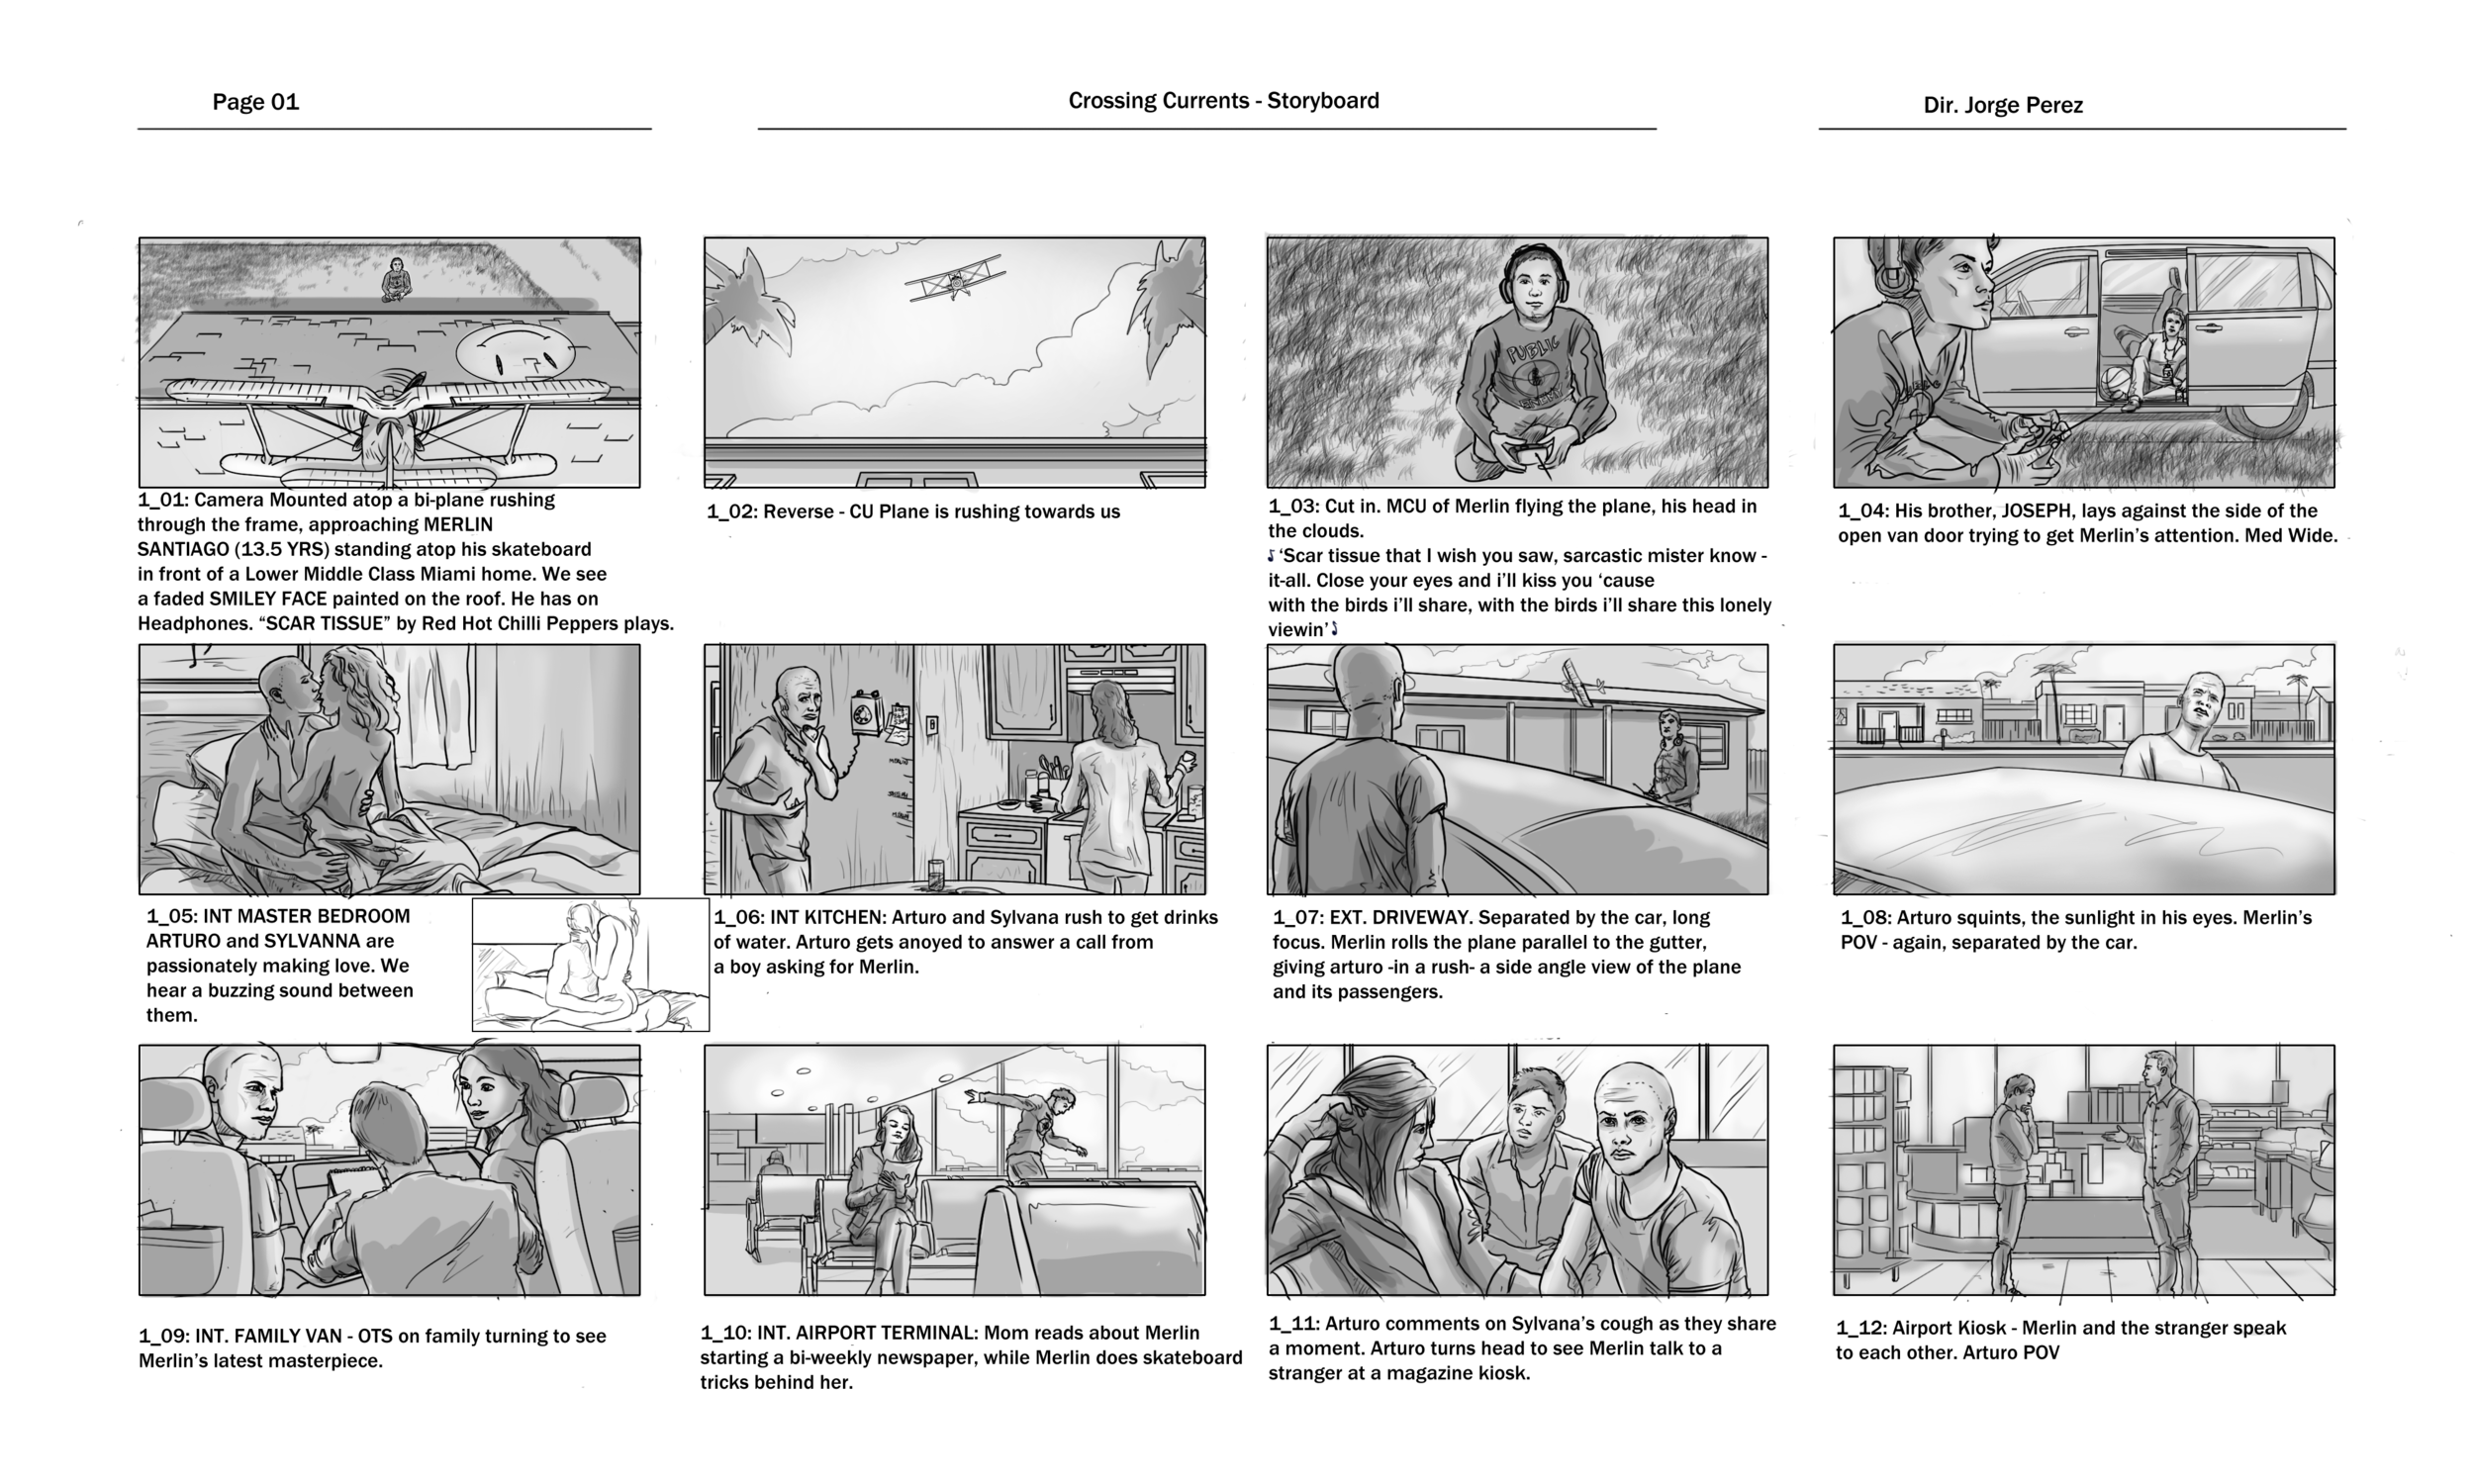 Crossing Currents Storyboard_Final_pg01.png